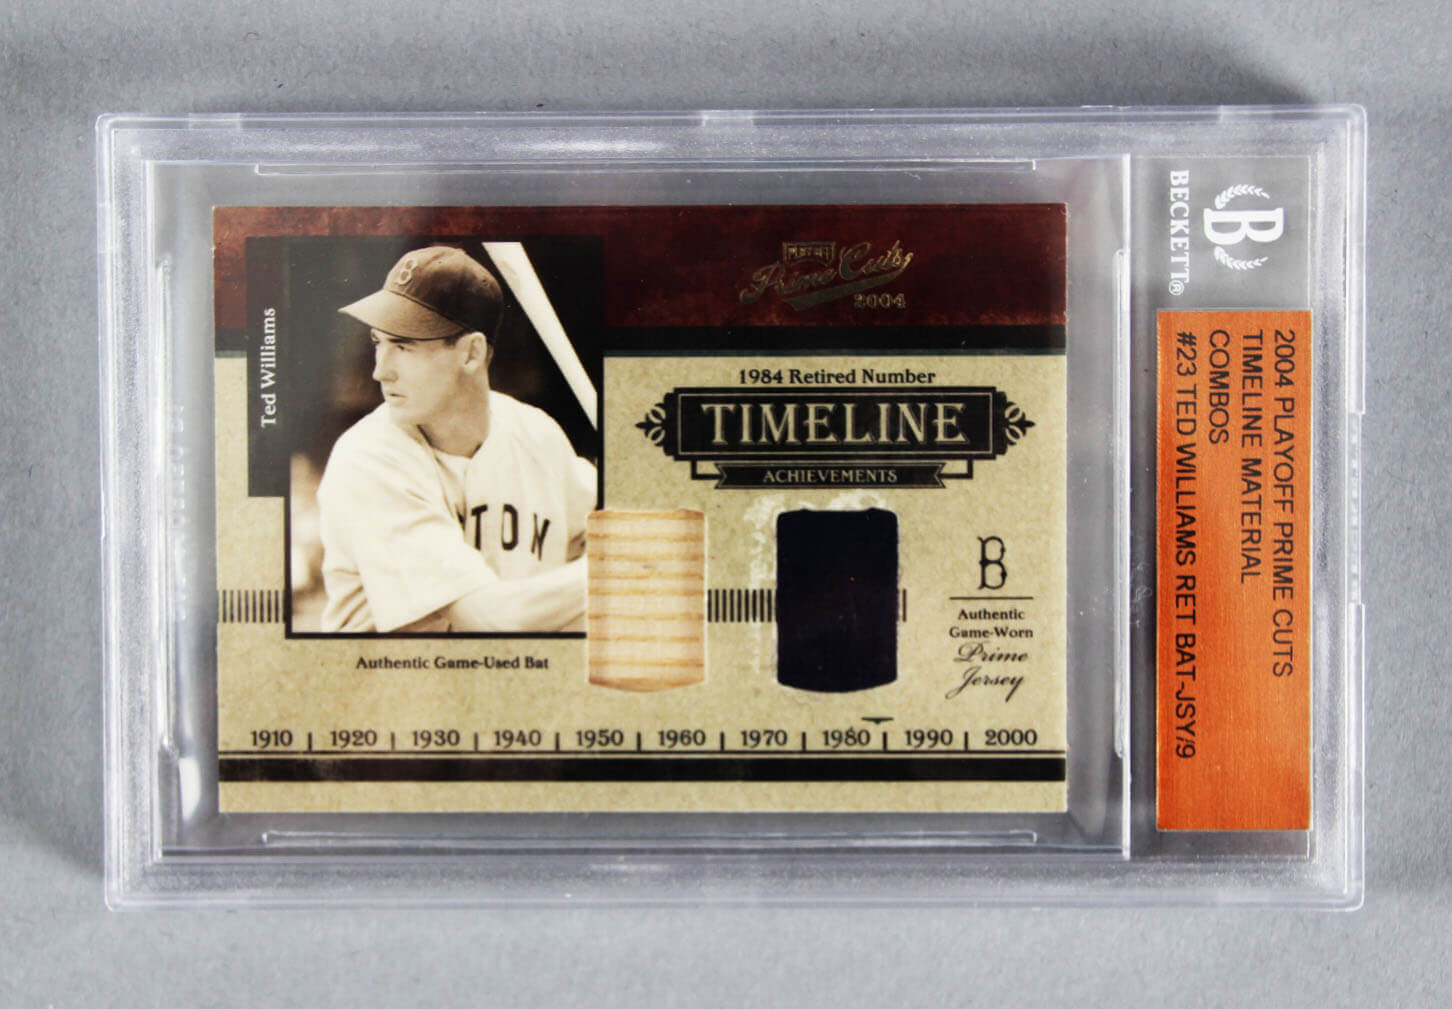 Ted Williams Graded Card 2004 Playoff Prime Cuts Timeline Material Combos 9/9  - Beckett Slab